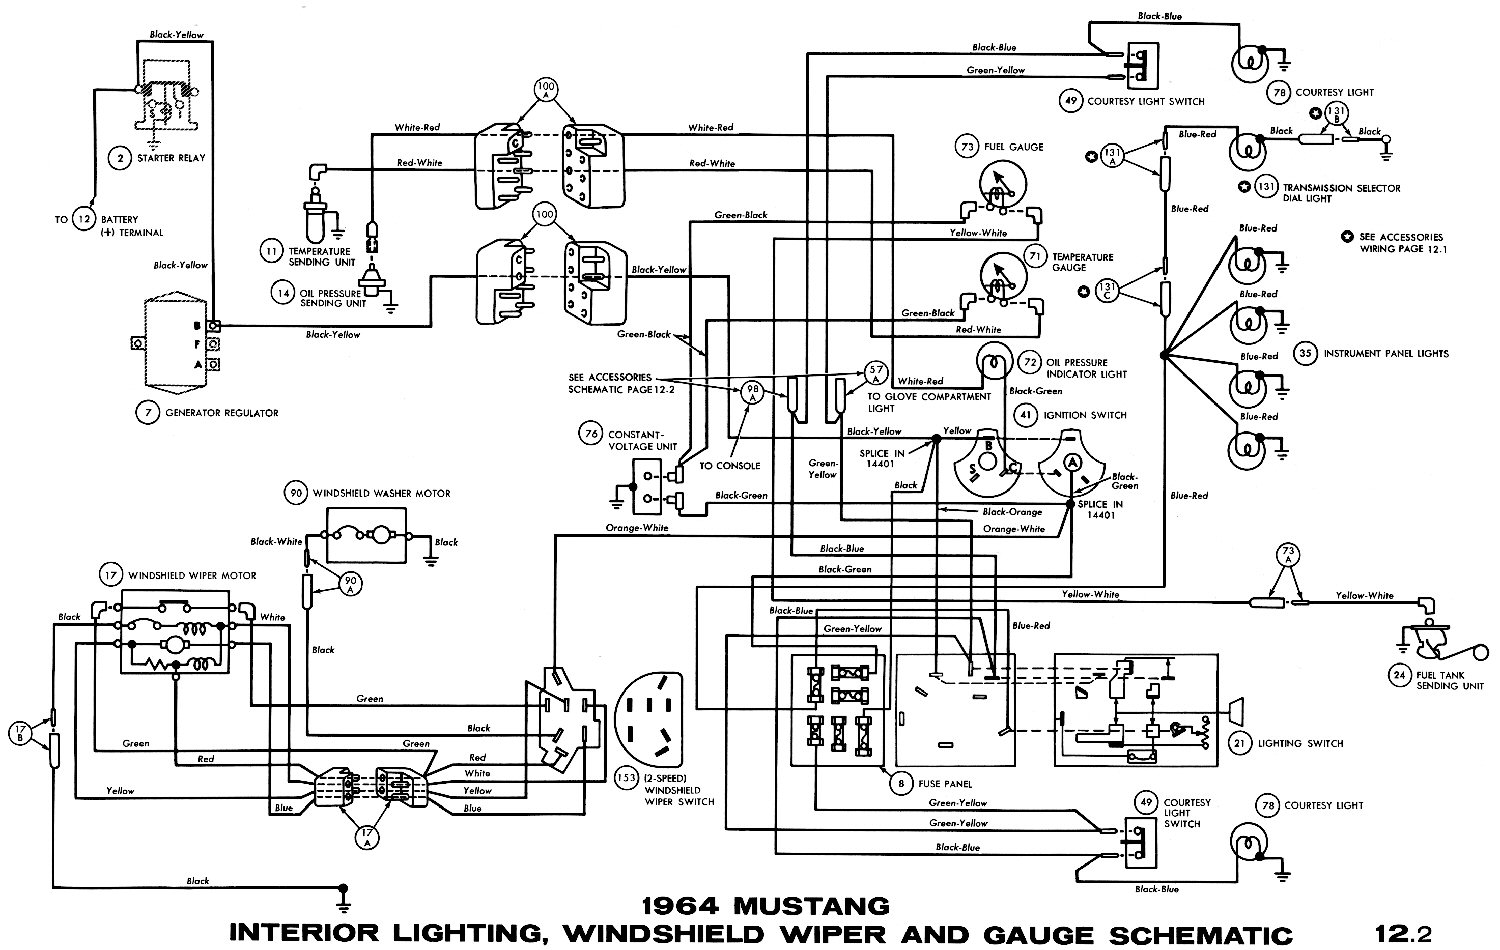 1965 mustang headlight wiring harness diagram